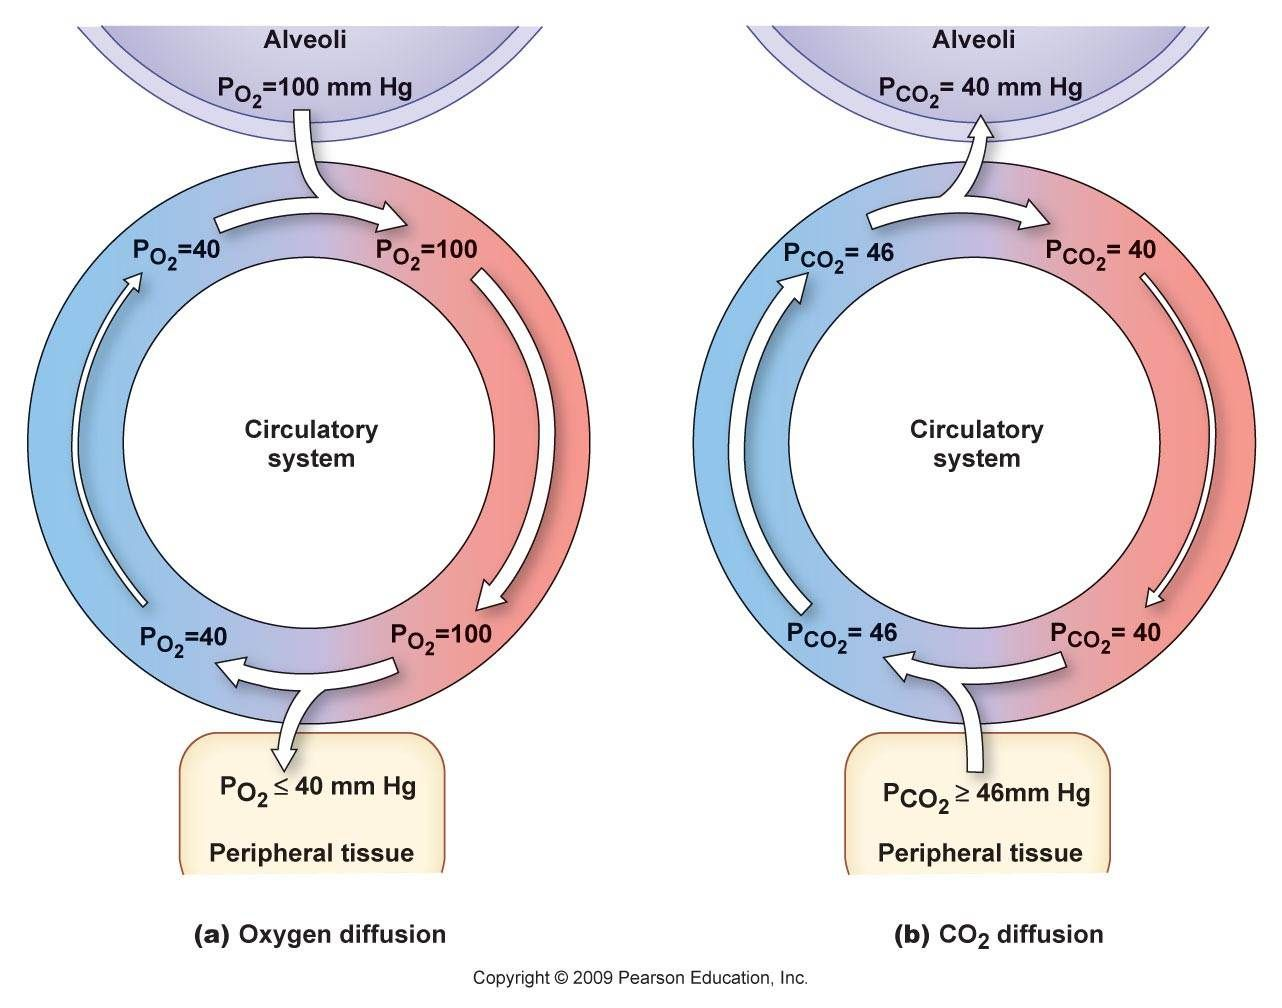 Avleoli Partial Pressures Physiology Human Anatomy And Physiology Respiratory System